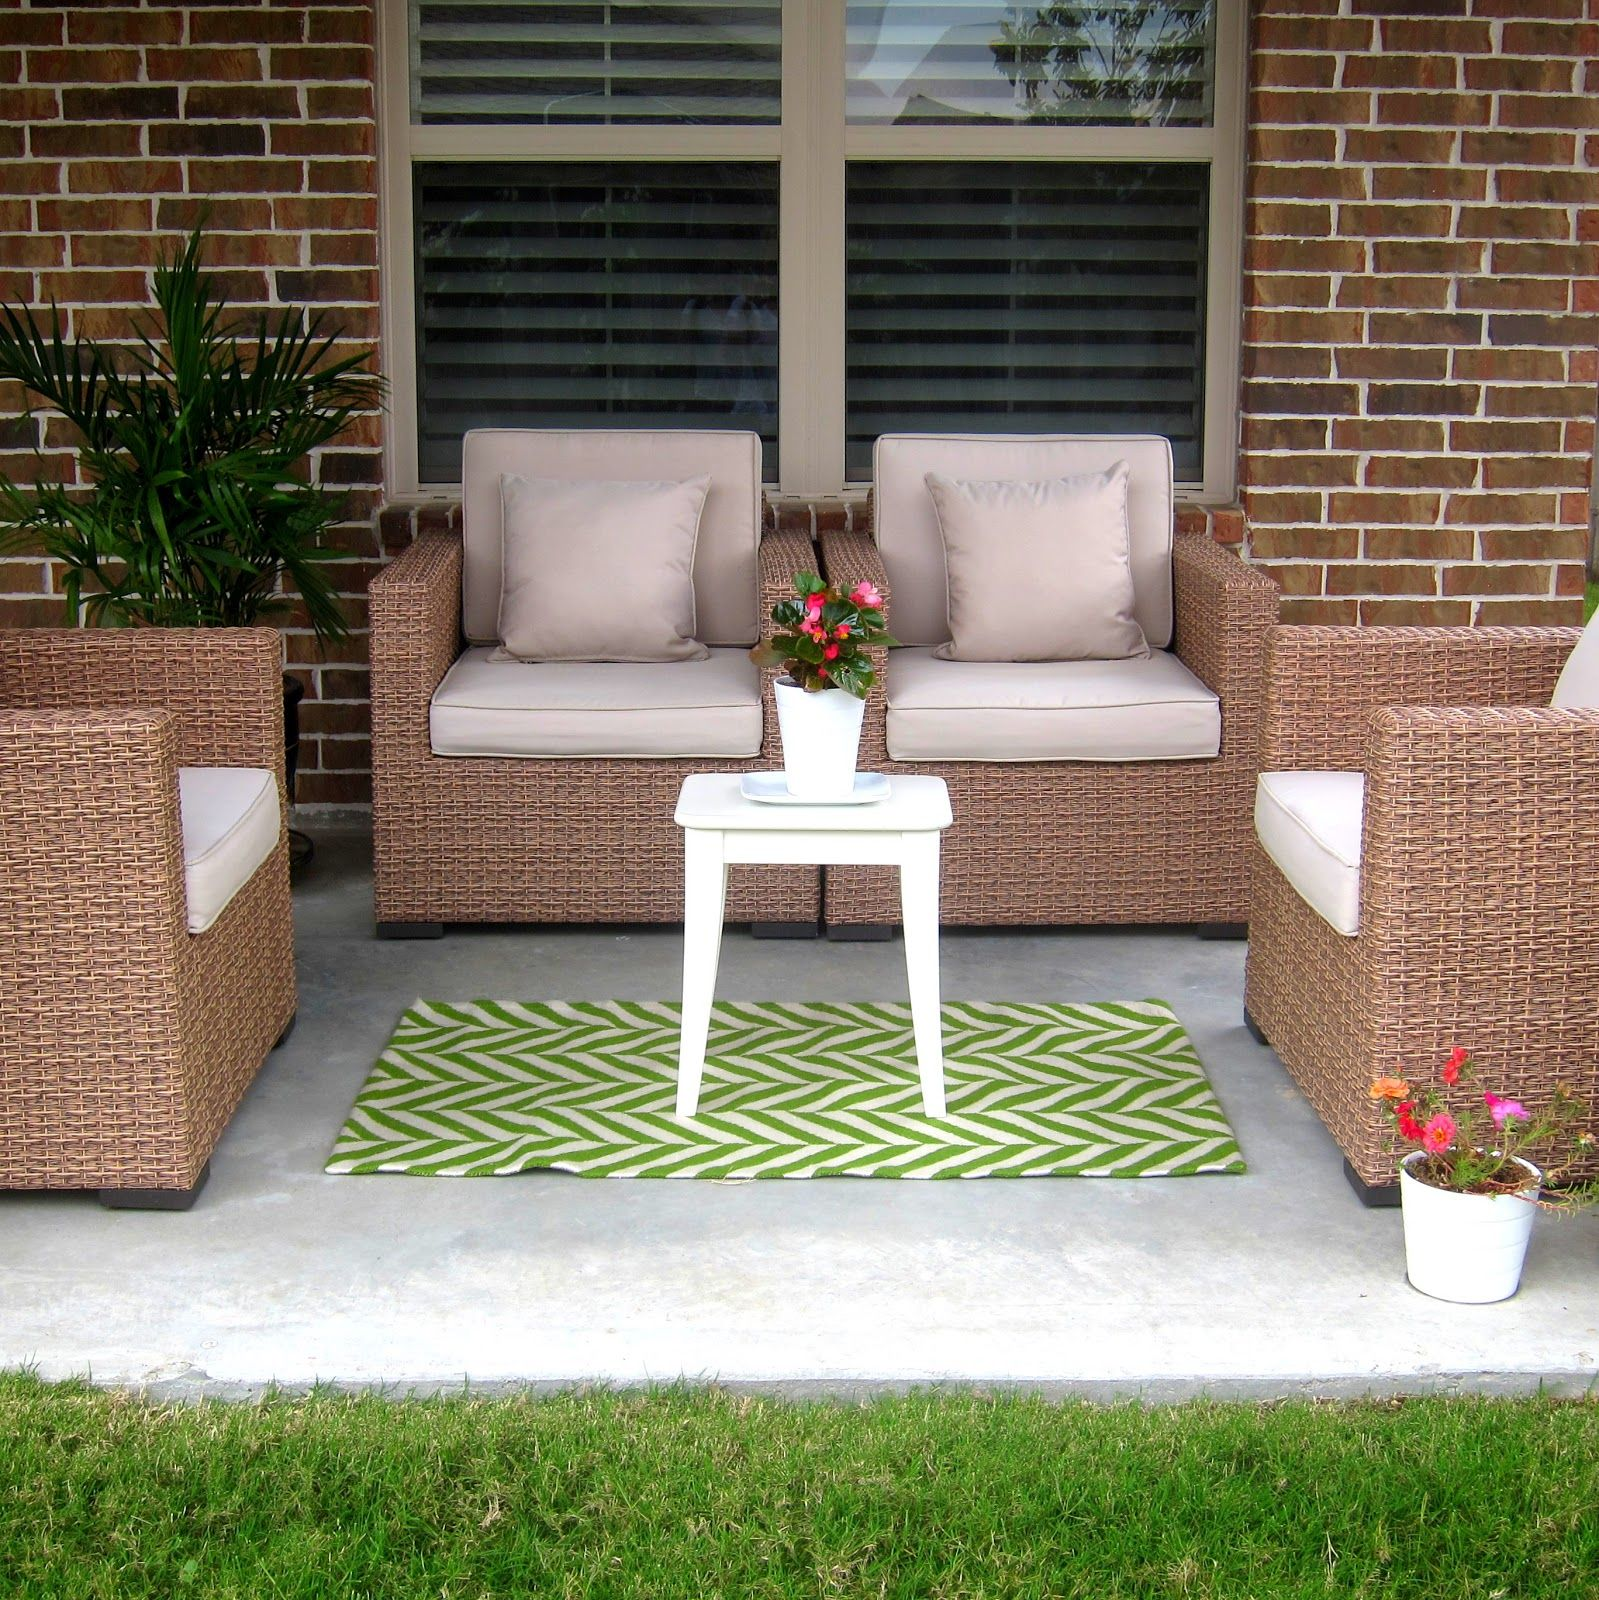 Patio rug, one of the best to choose Patio rugs, Outdoor